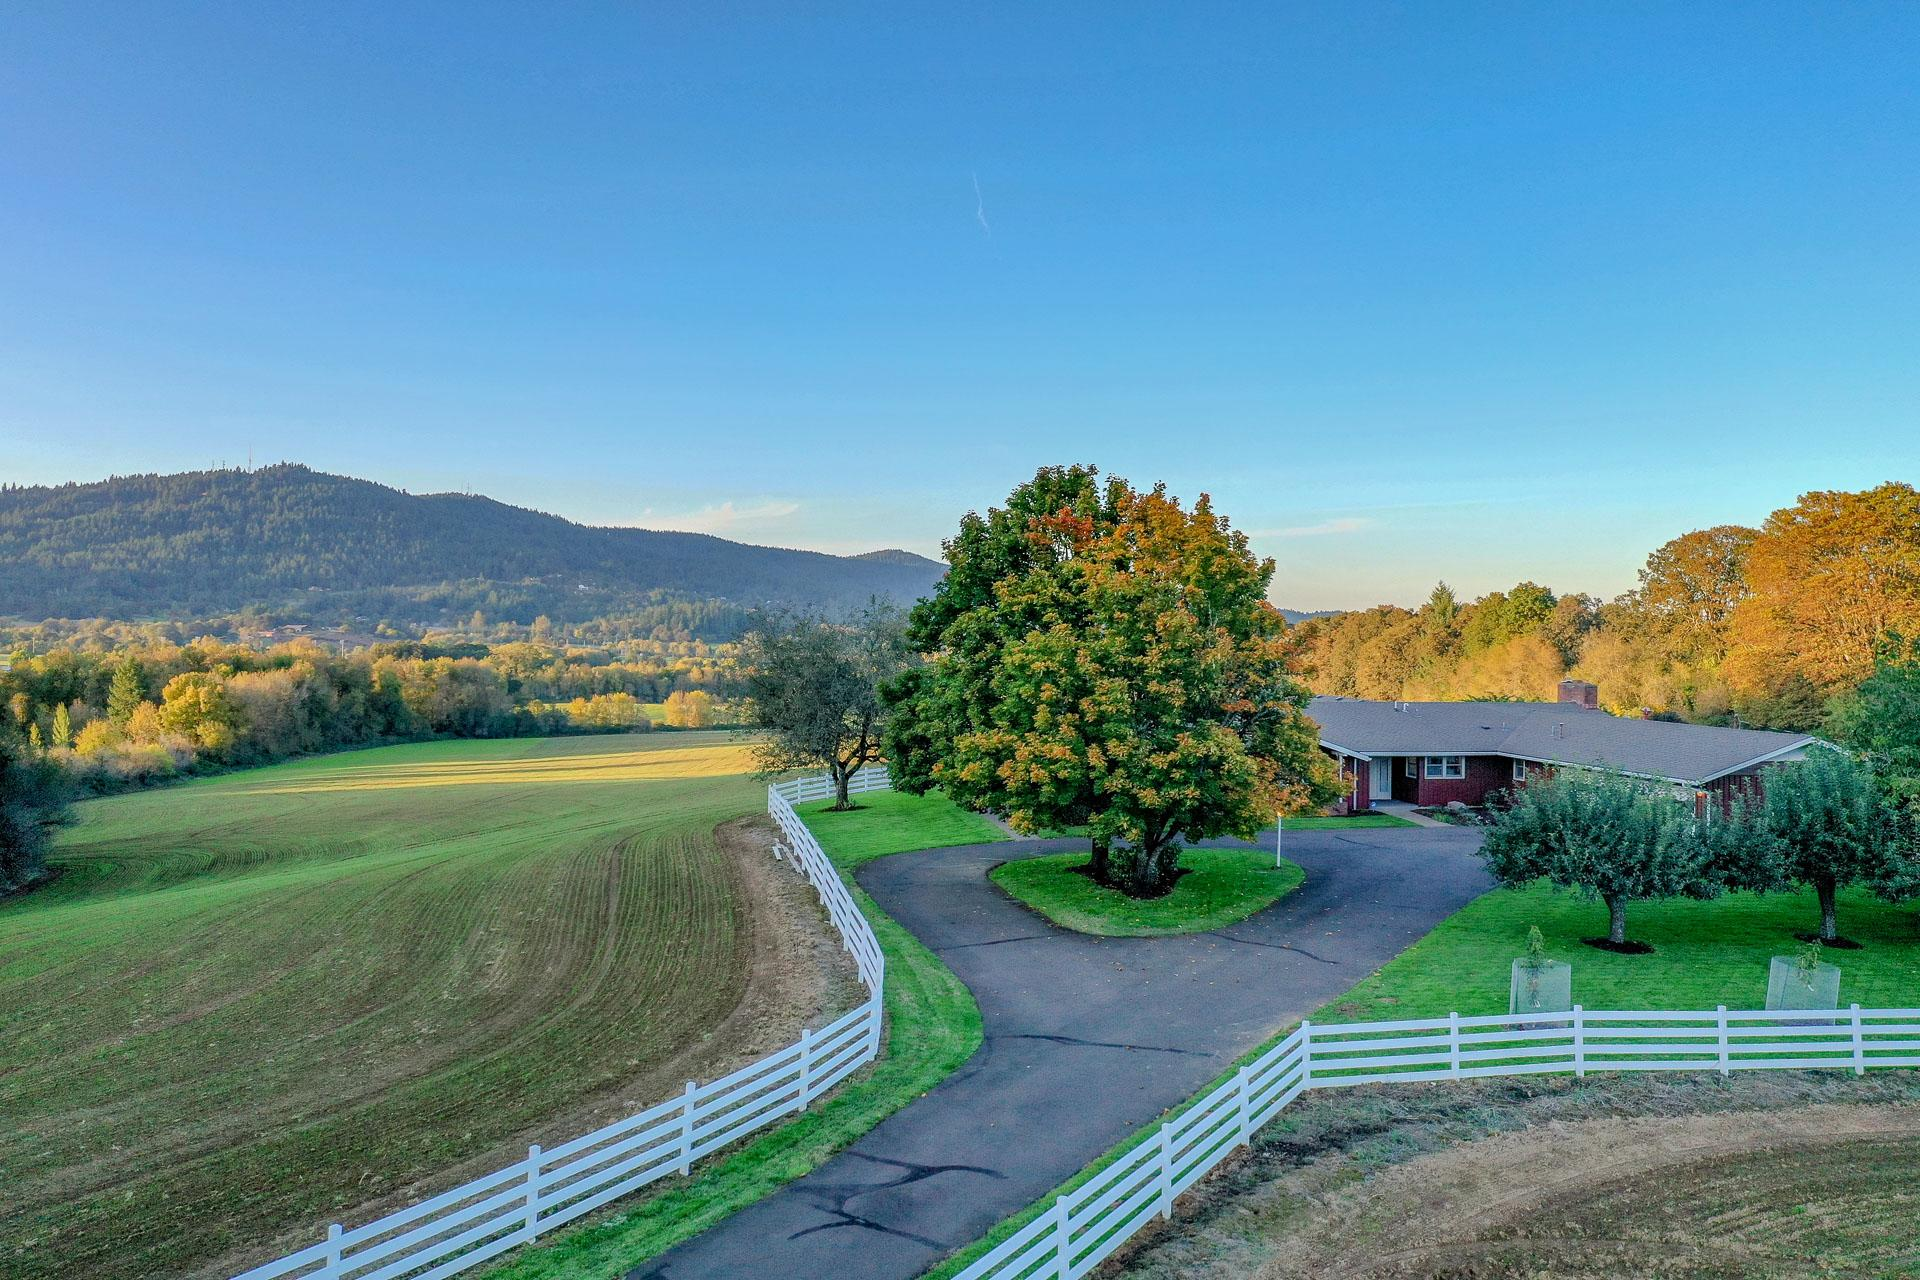 Fall at Highland Acres - Where epic sunrises and sunsets take place!